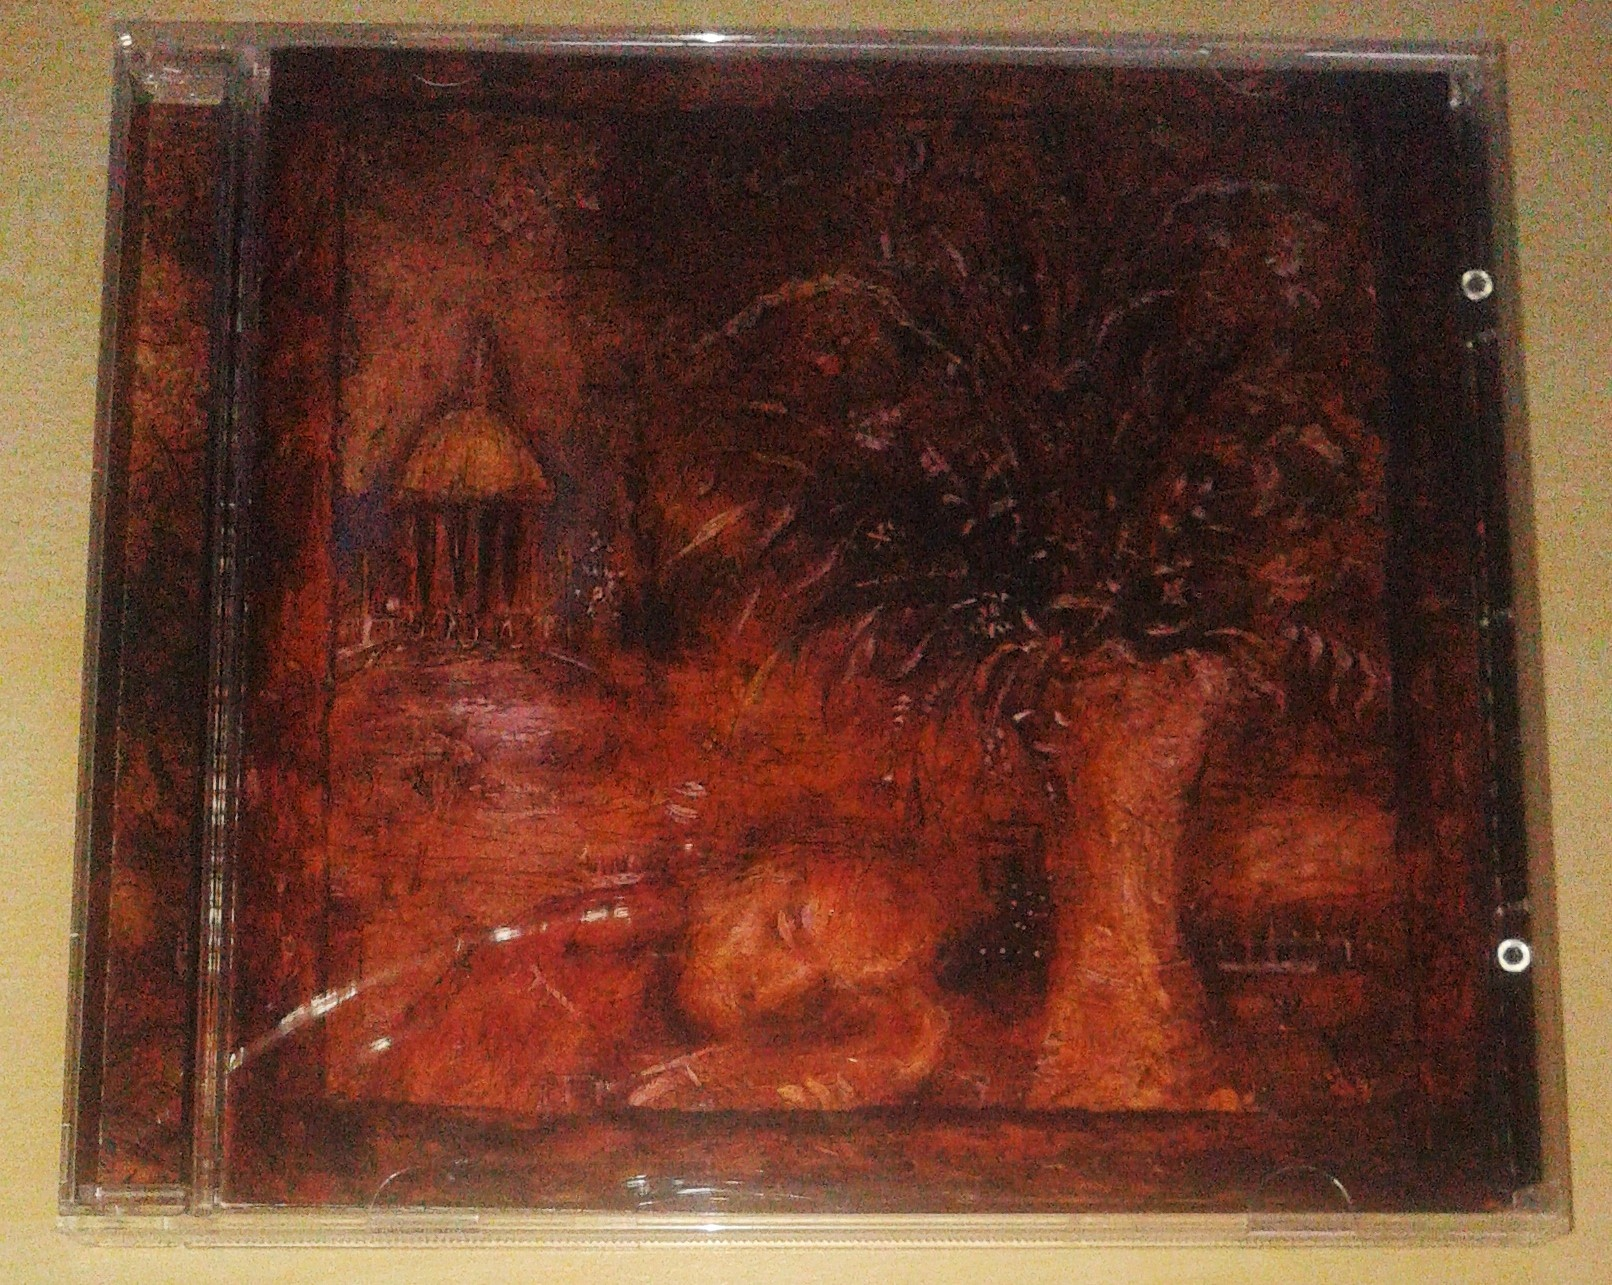 MeWithoutYou - A B Life CD